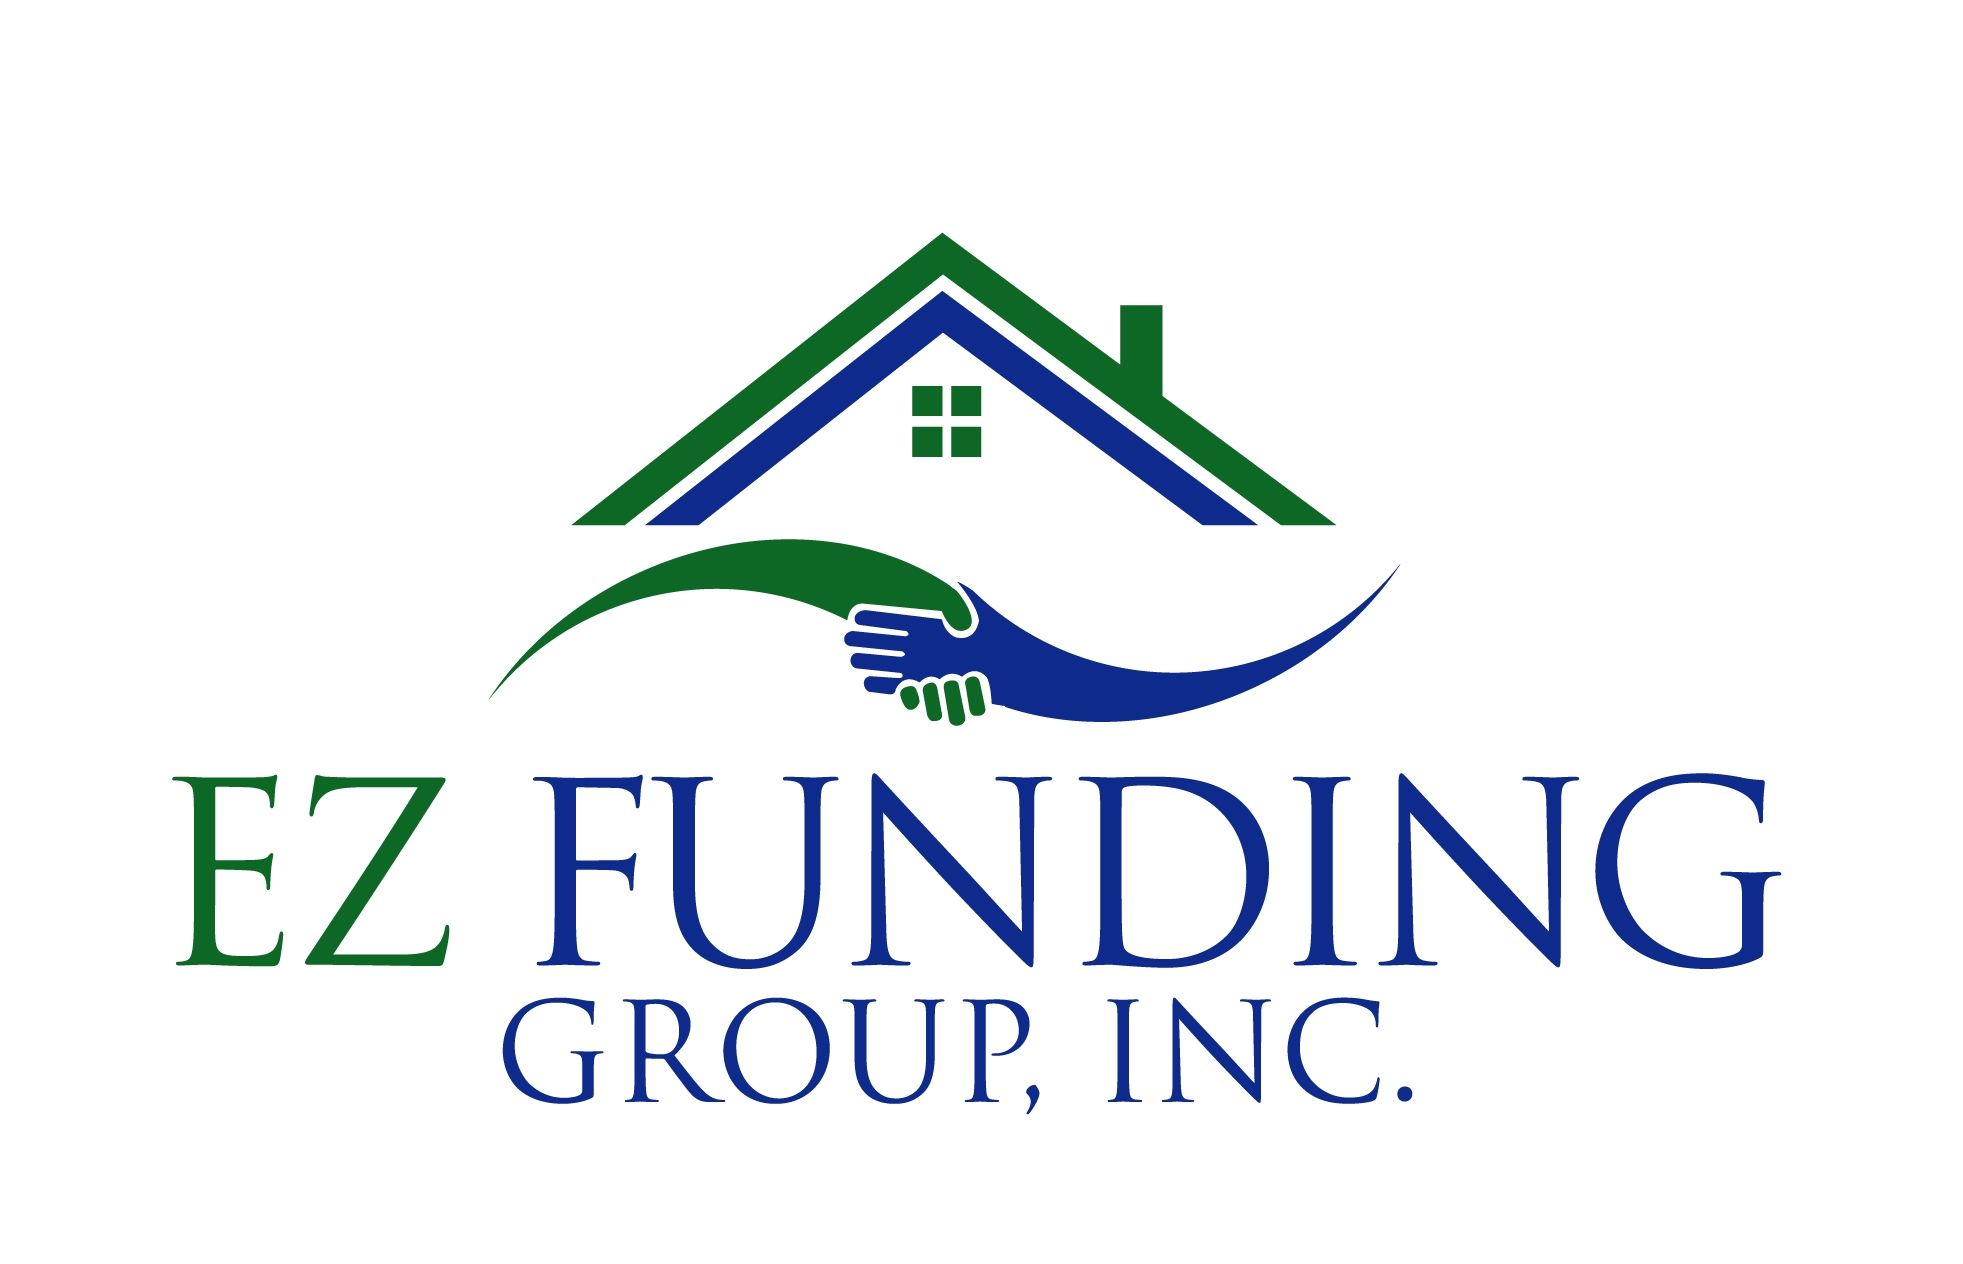 EZ Funding Group, Inc.